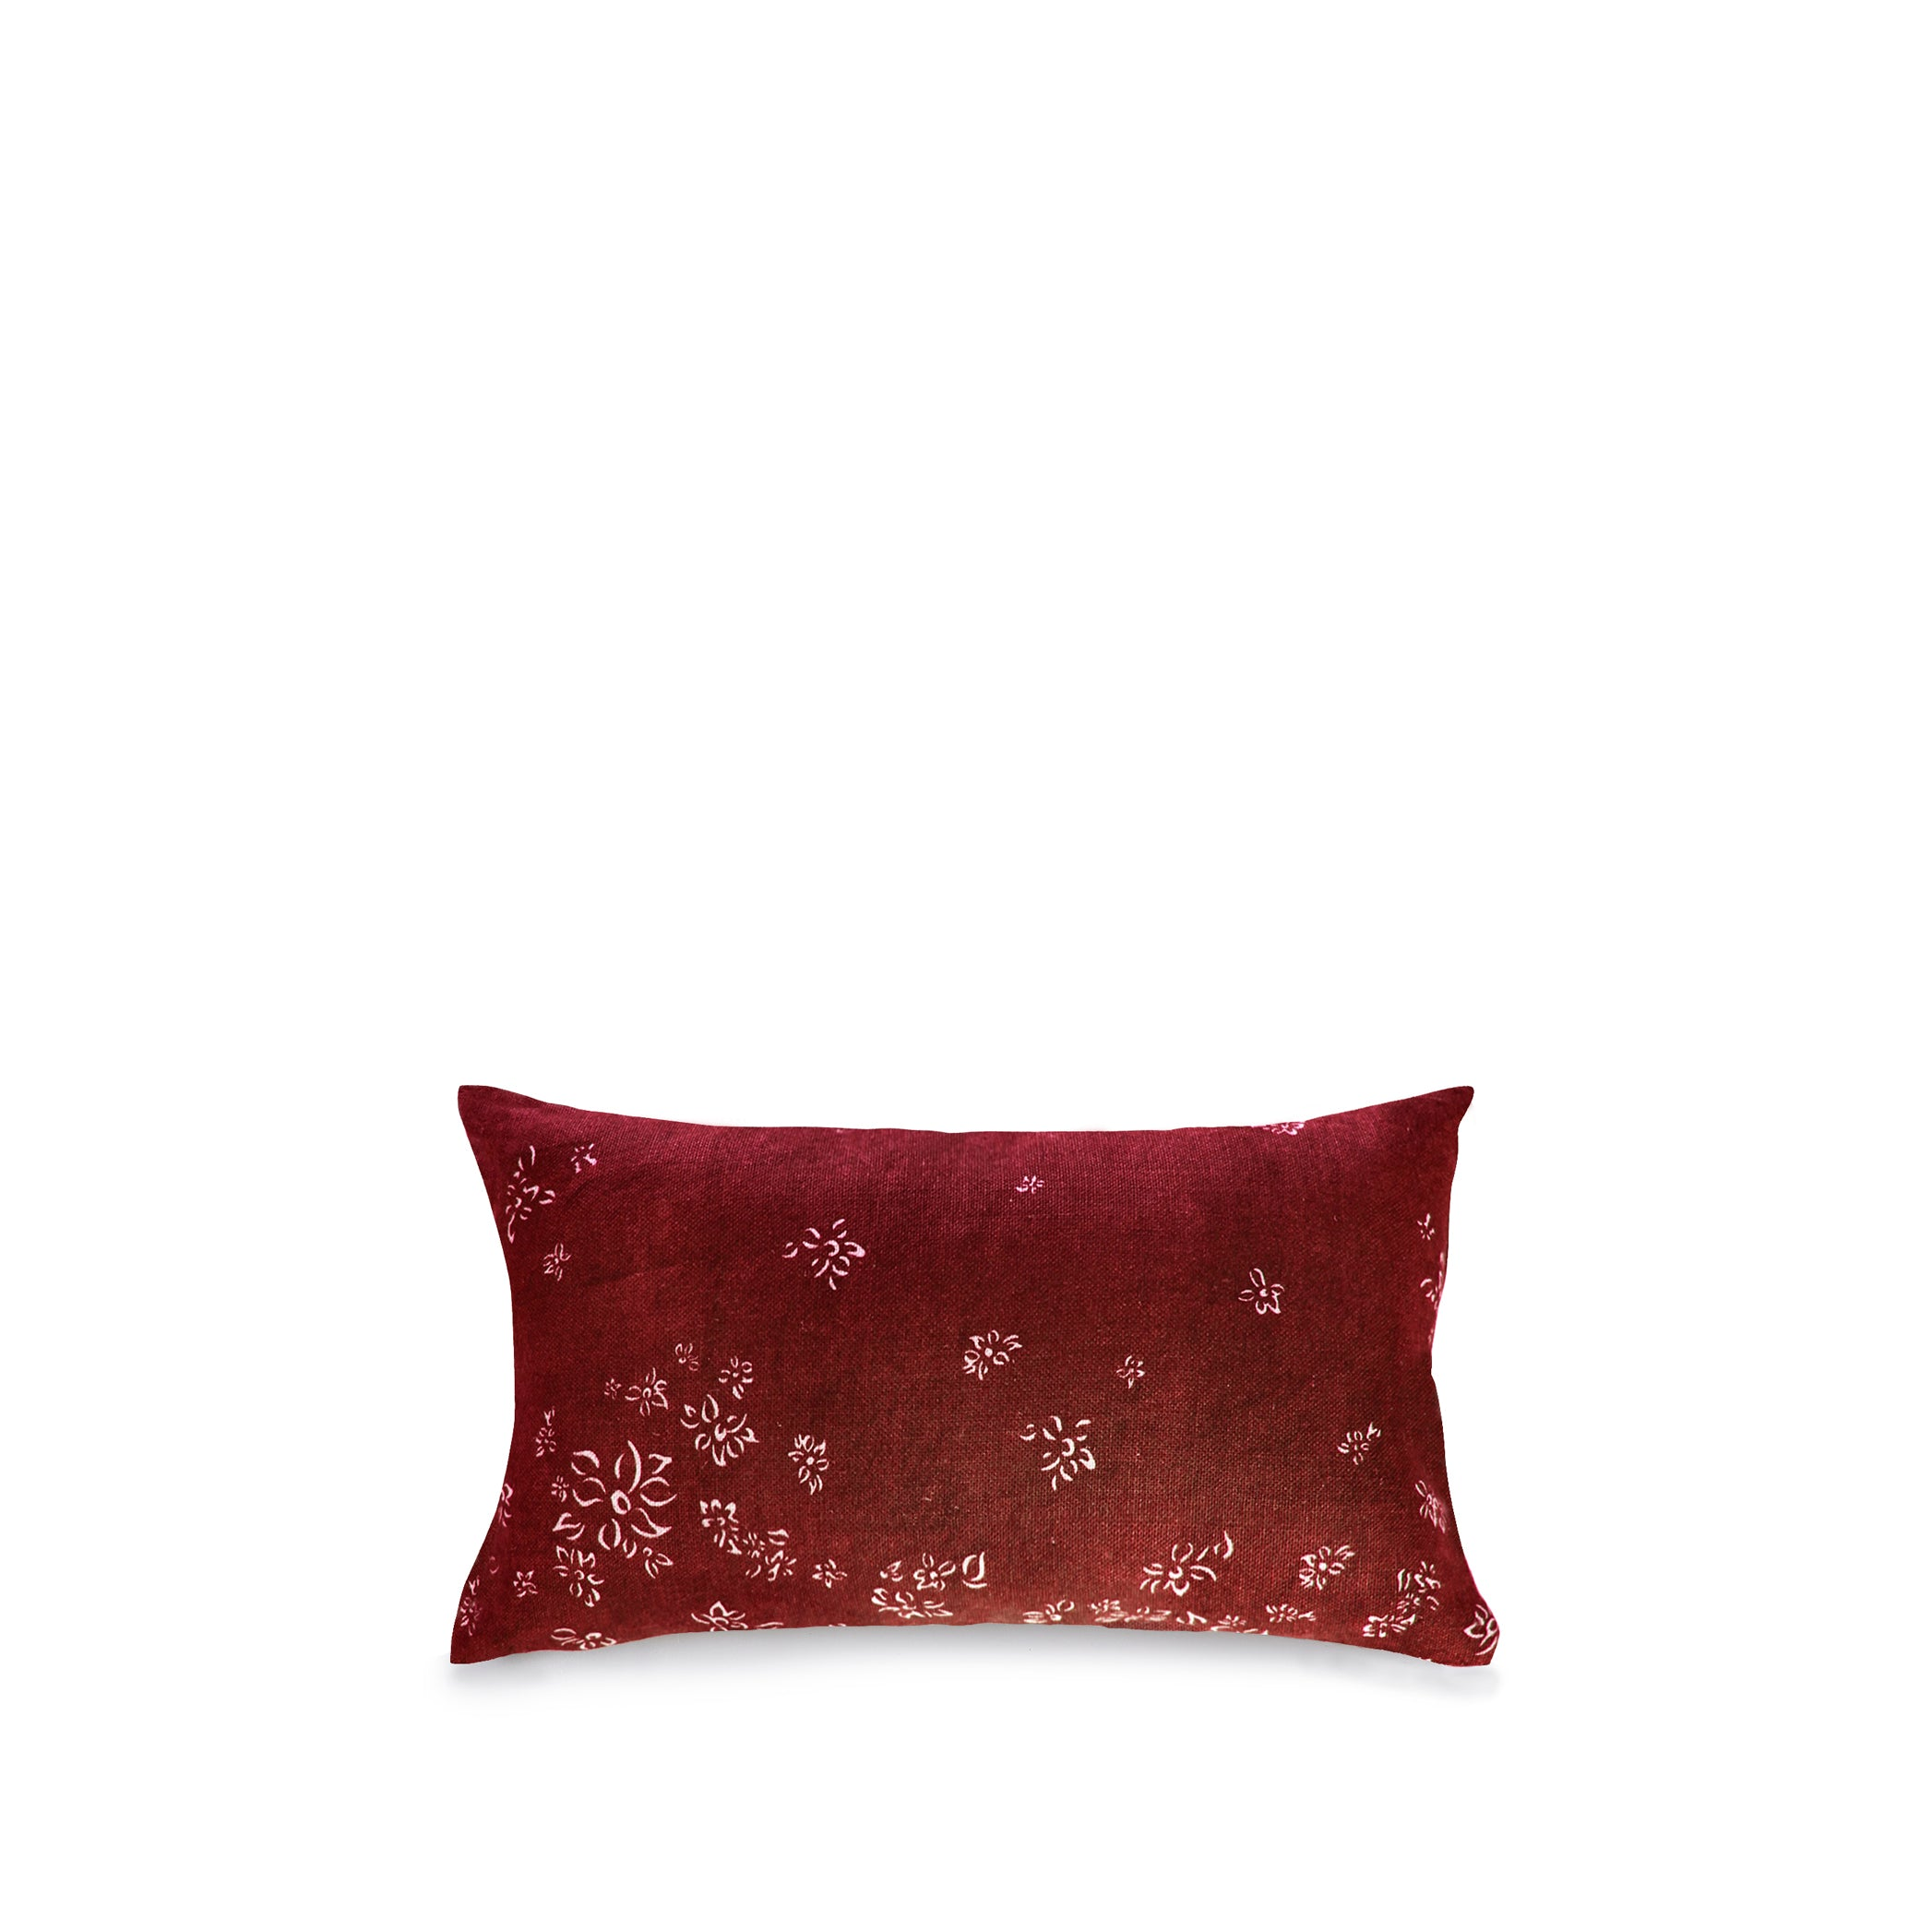 Heavy Linen Falling Flower Cushion in Full Field Claret Red, 50cm x 30cm